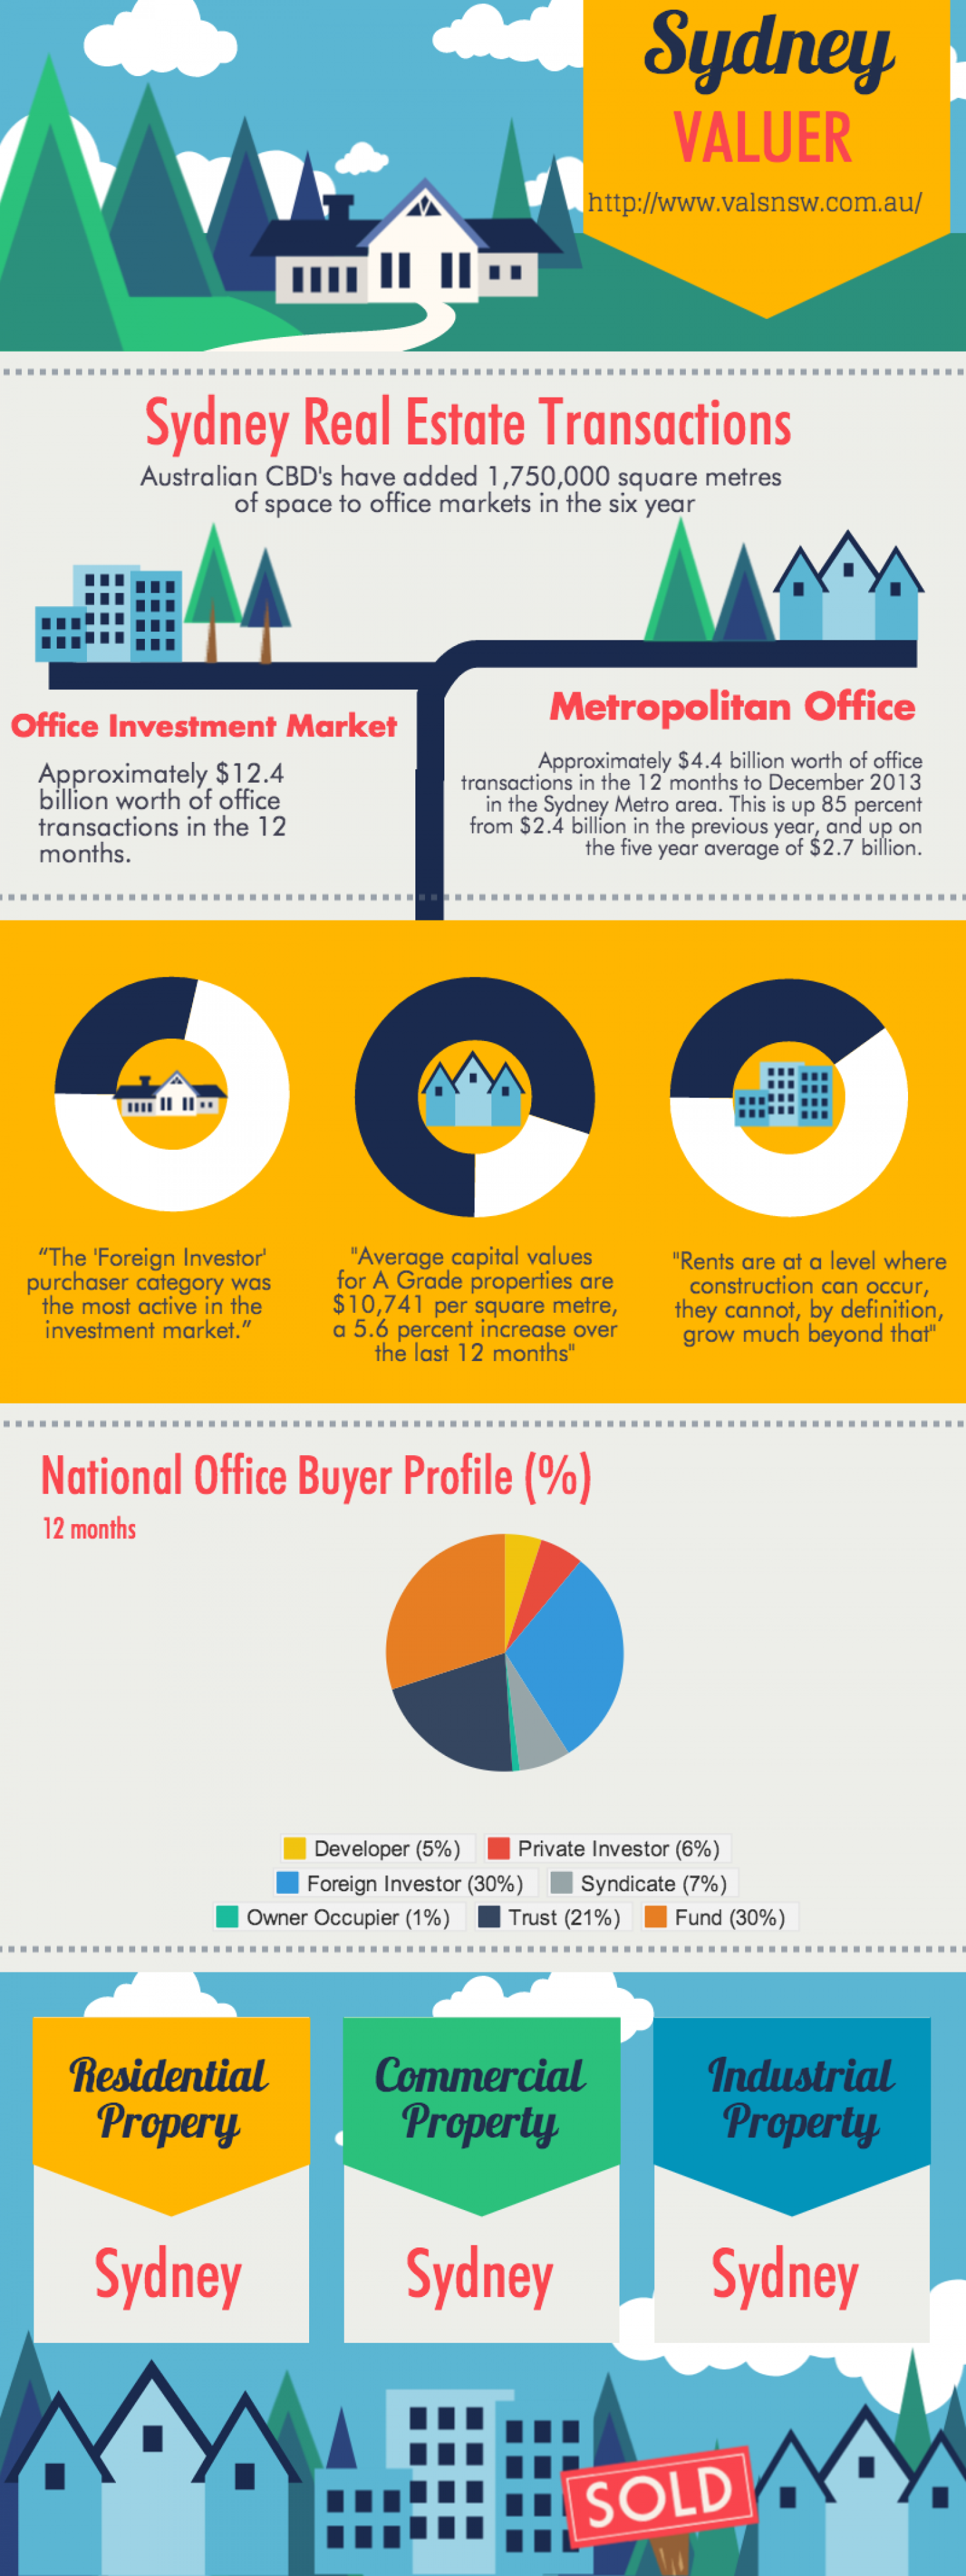 Sydeny Valuers Infographic